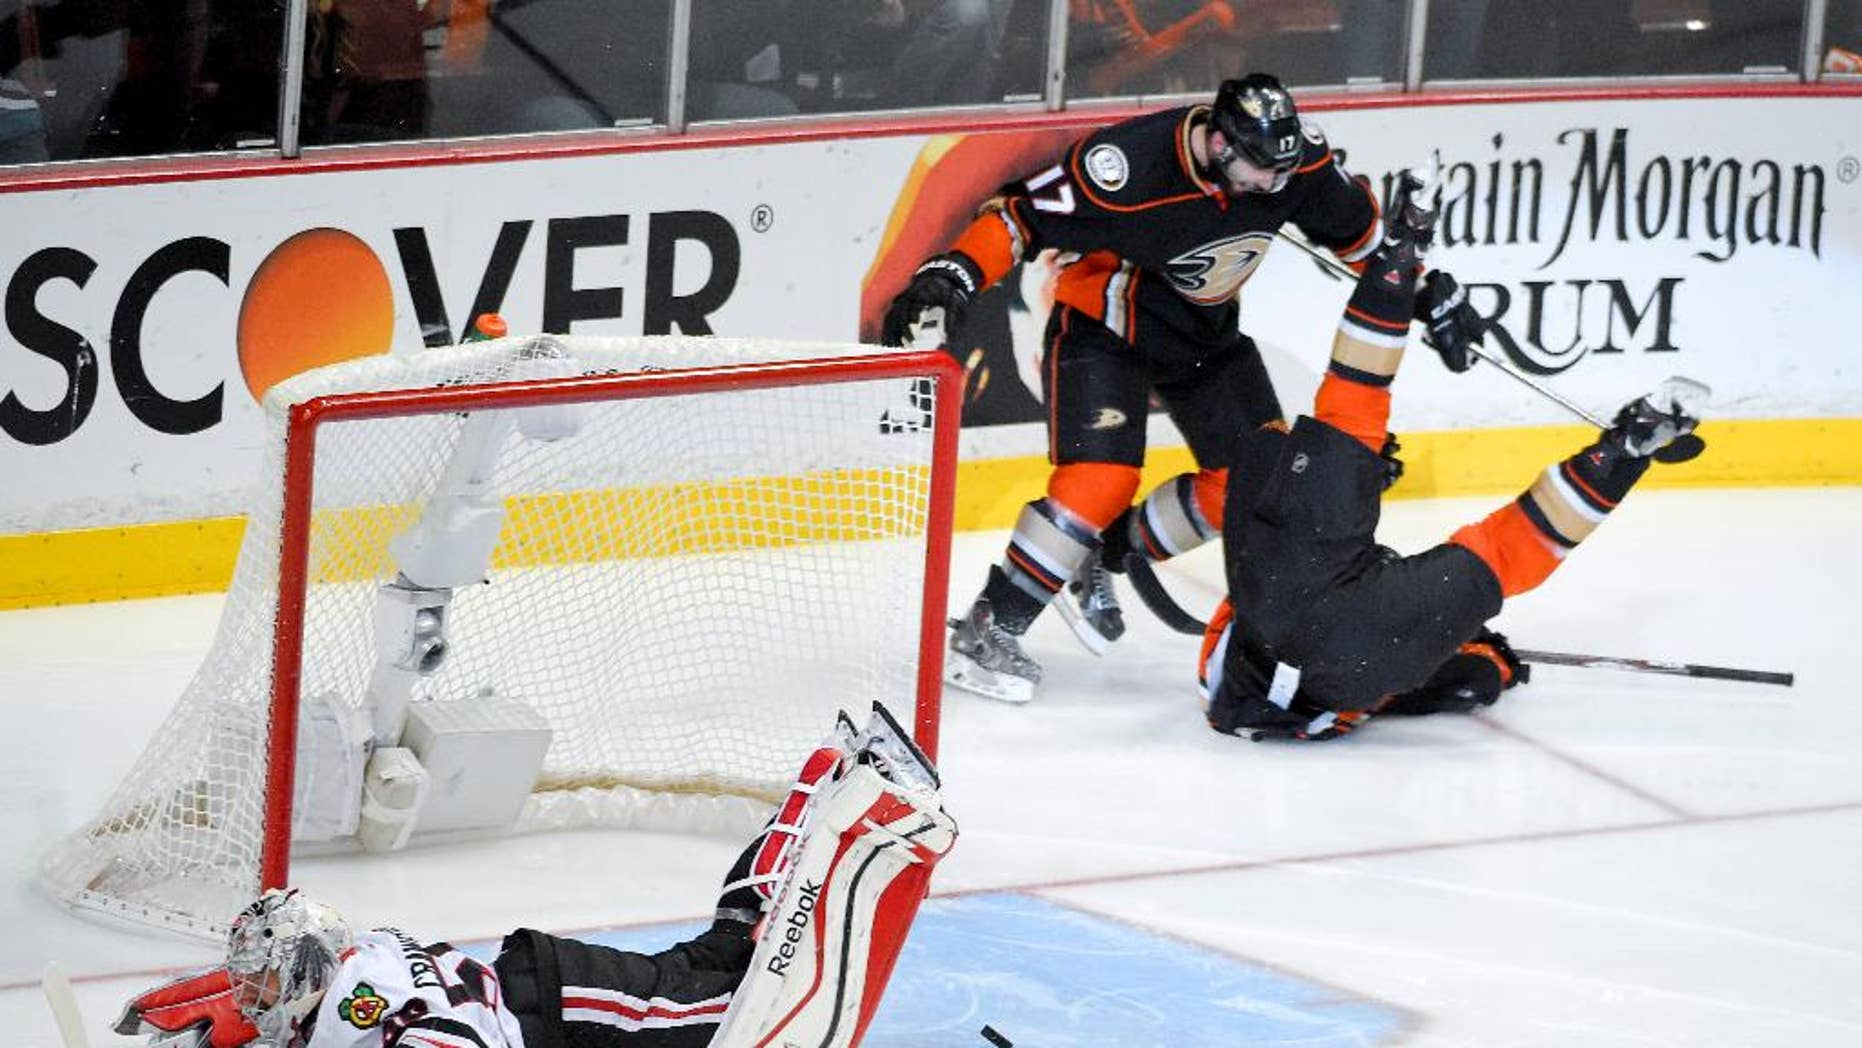 Anaheim Ducks left wing Matt Beleskey right, celebrates with Ryan Kesler after scoring the game winning goal past Chicago Blackhawks goalie Corey Crawford, left, during overtime in Game 5 of the Western Conference final of the NHL hockey Stanley Cup playoffs in Anaheim, Calif., on Monday, May 25, 2015. (AP Photo/Mark J. Terrill)